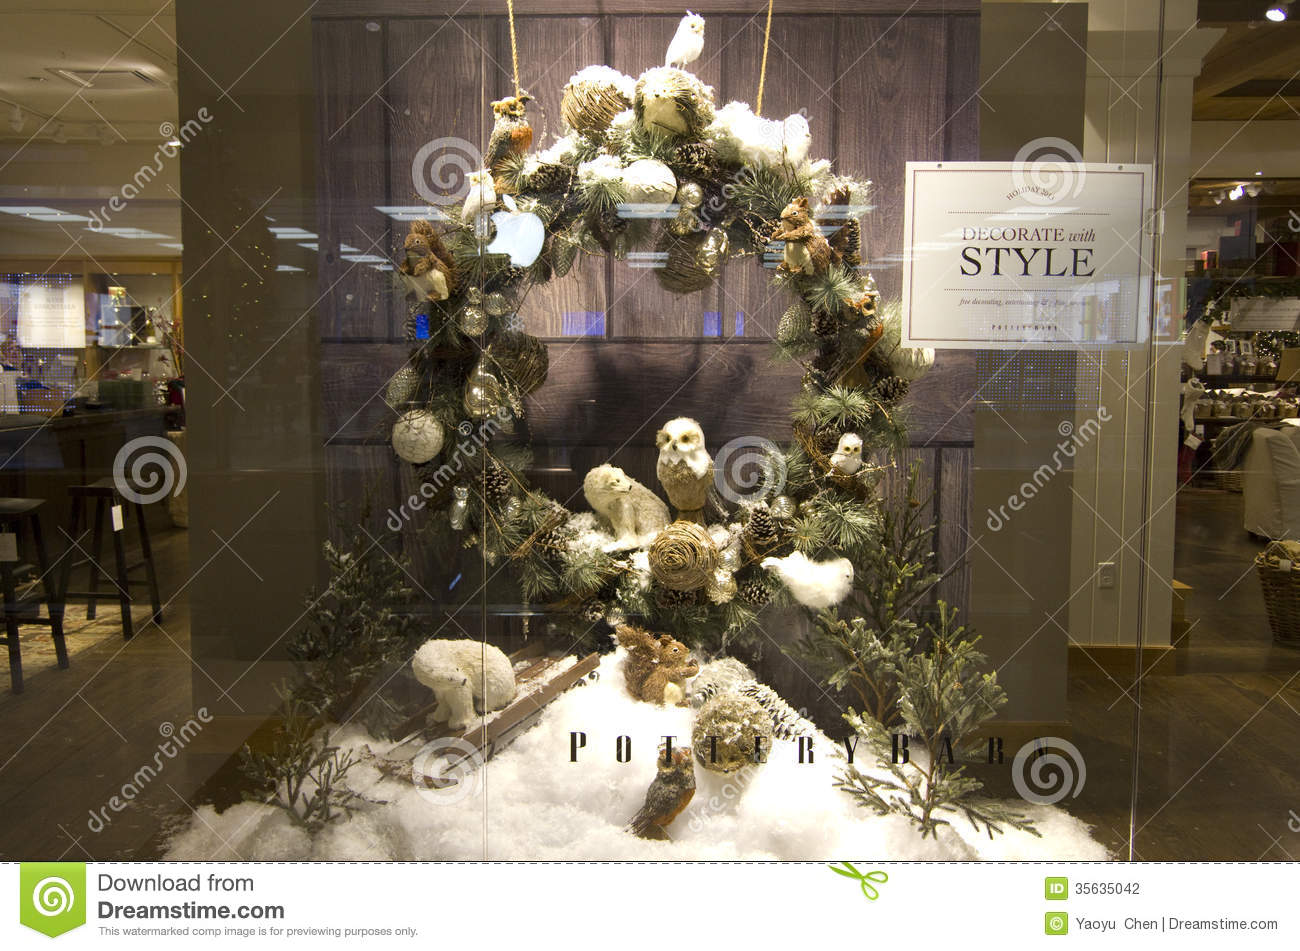 thanksgiving christmas decorations home deco store window - At Home Store Christmas Decorations